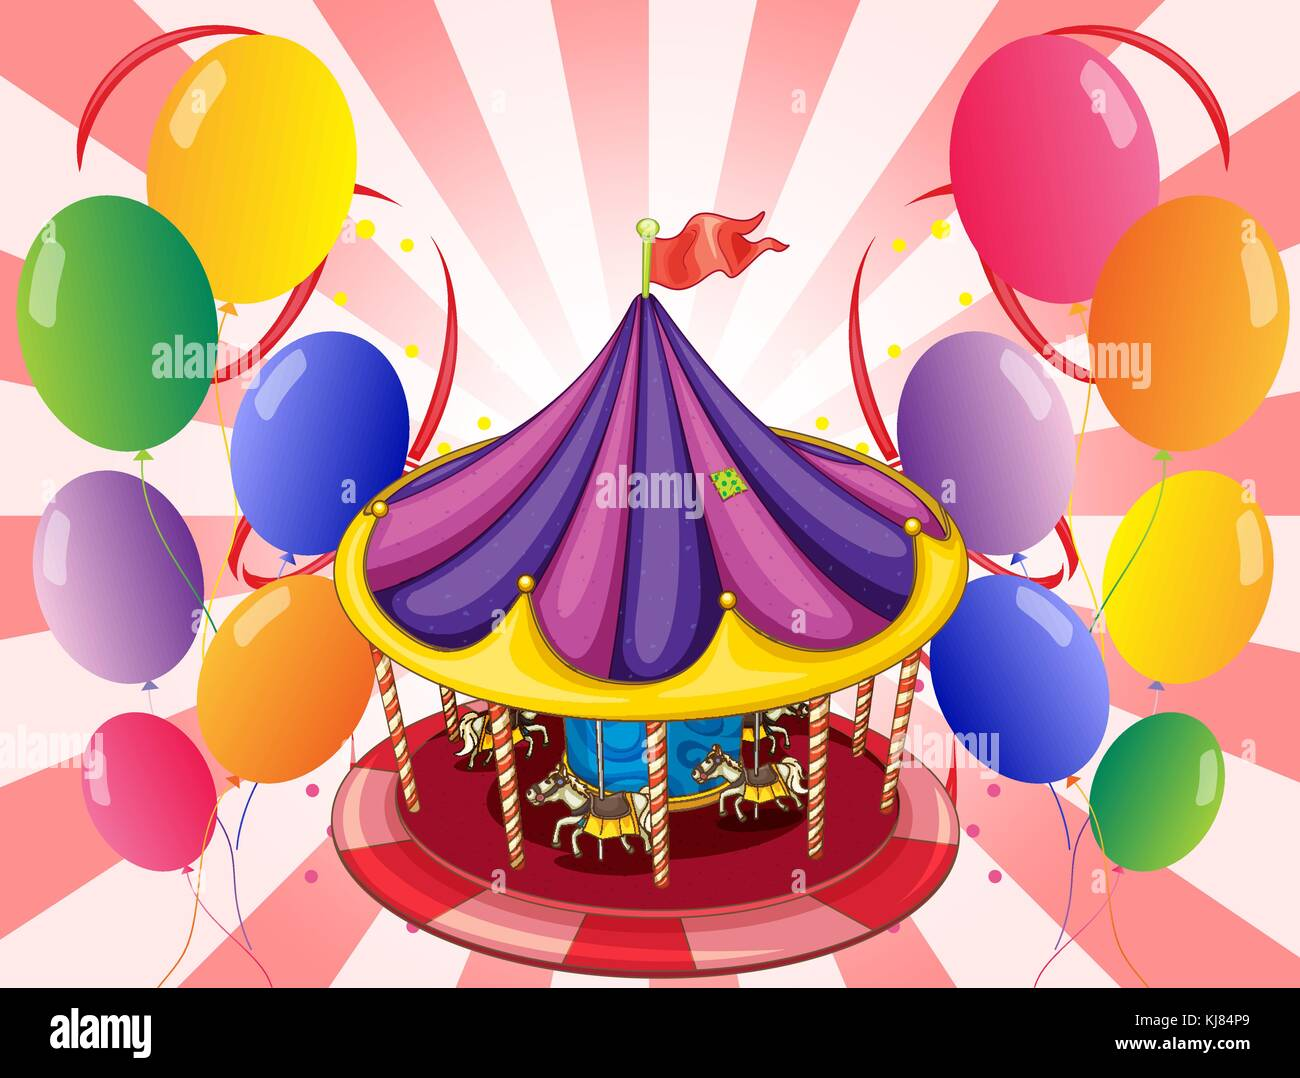 Illustration of a carousel at the center of the balloons - Stock Image